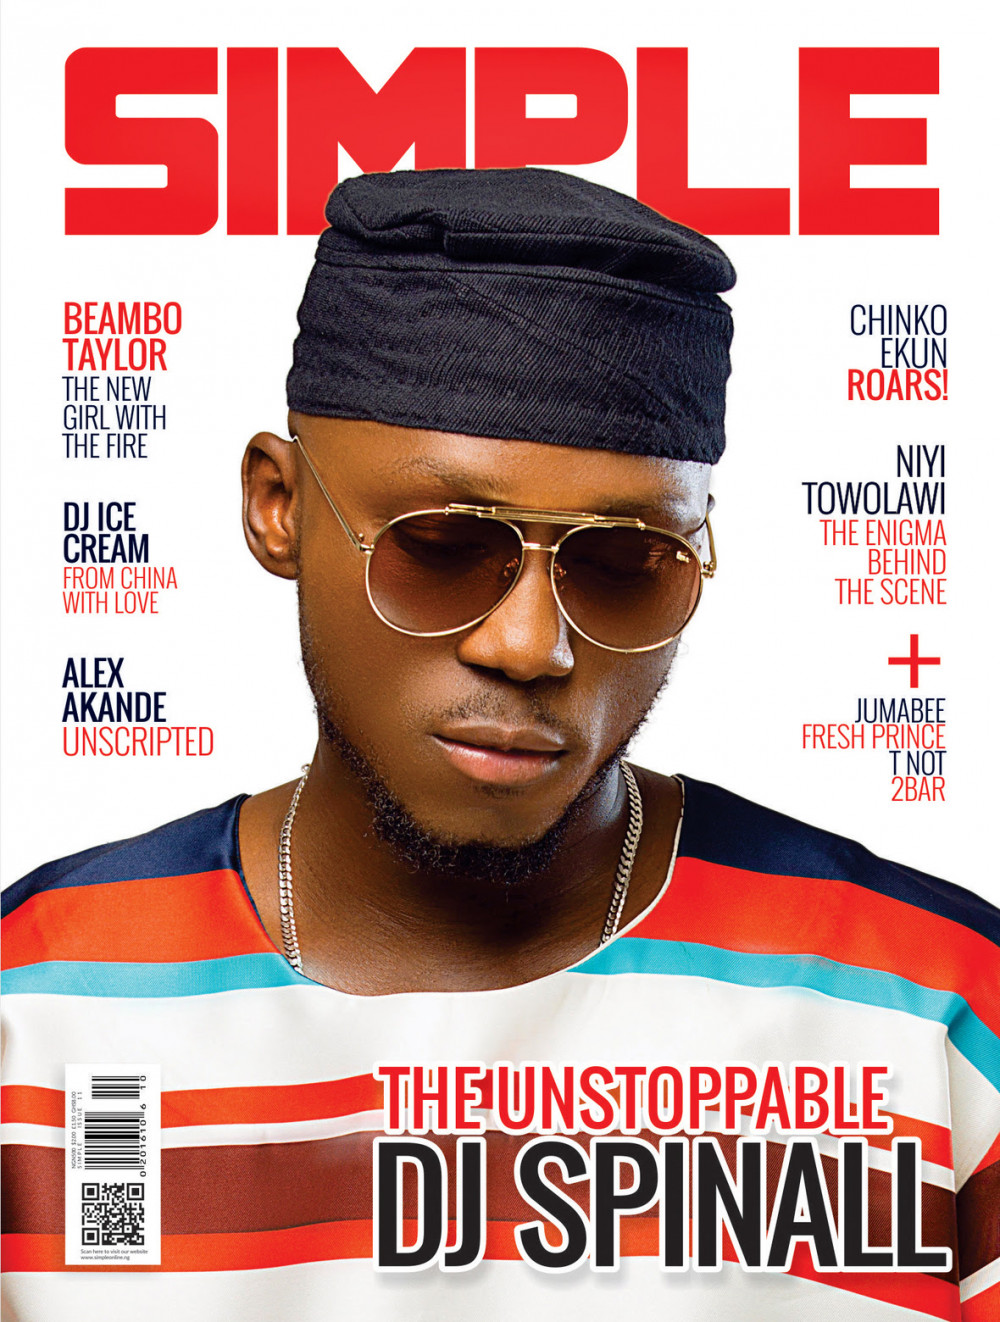 The Unstoppable! DJ Spinall covers Latest Issue of Simple Magazine